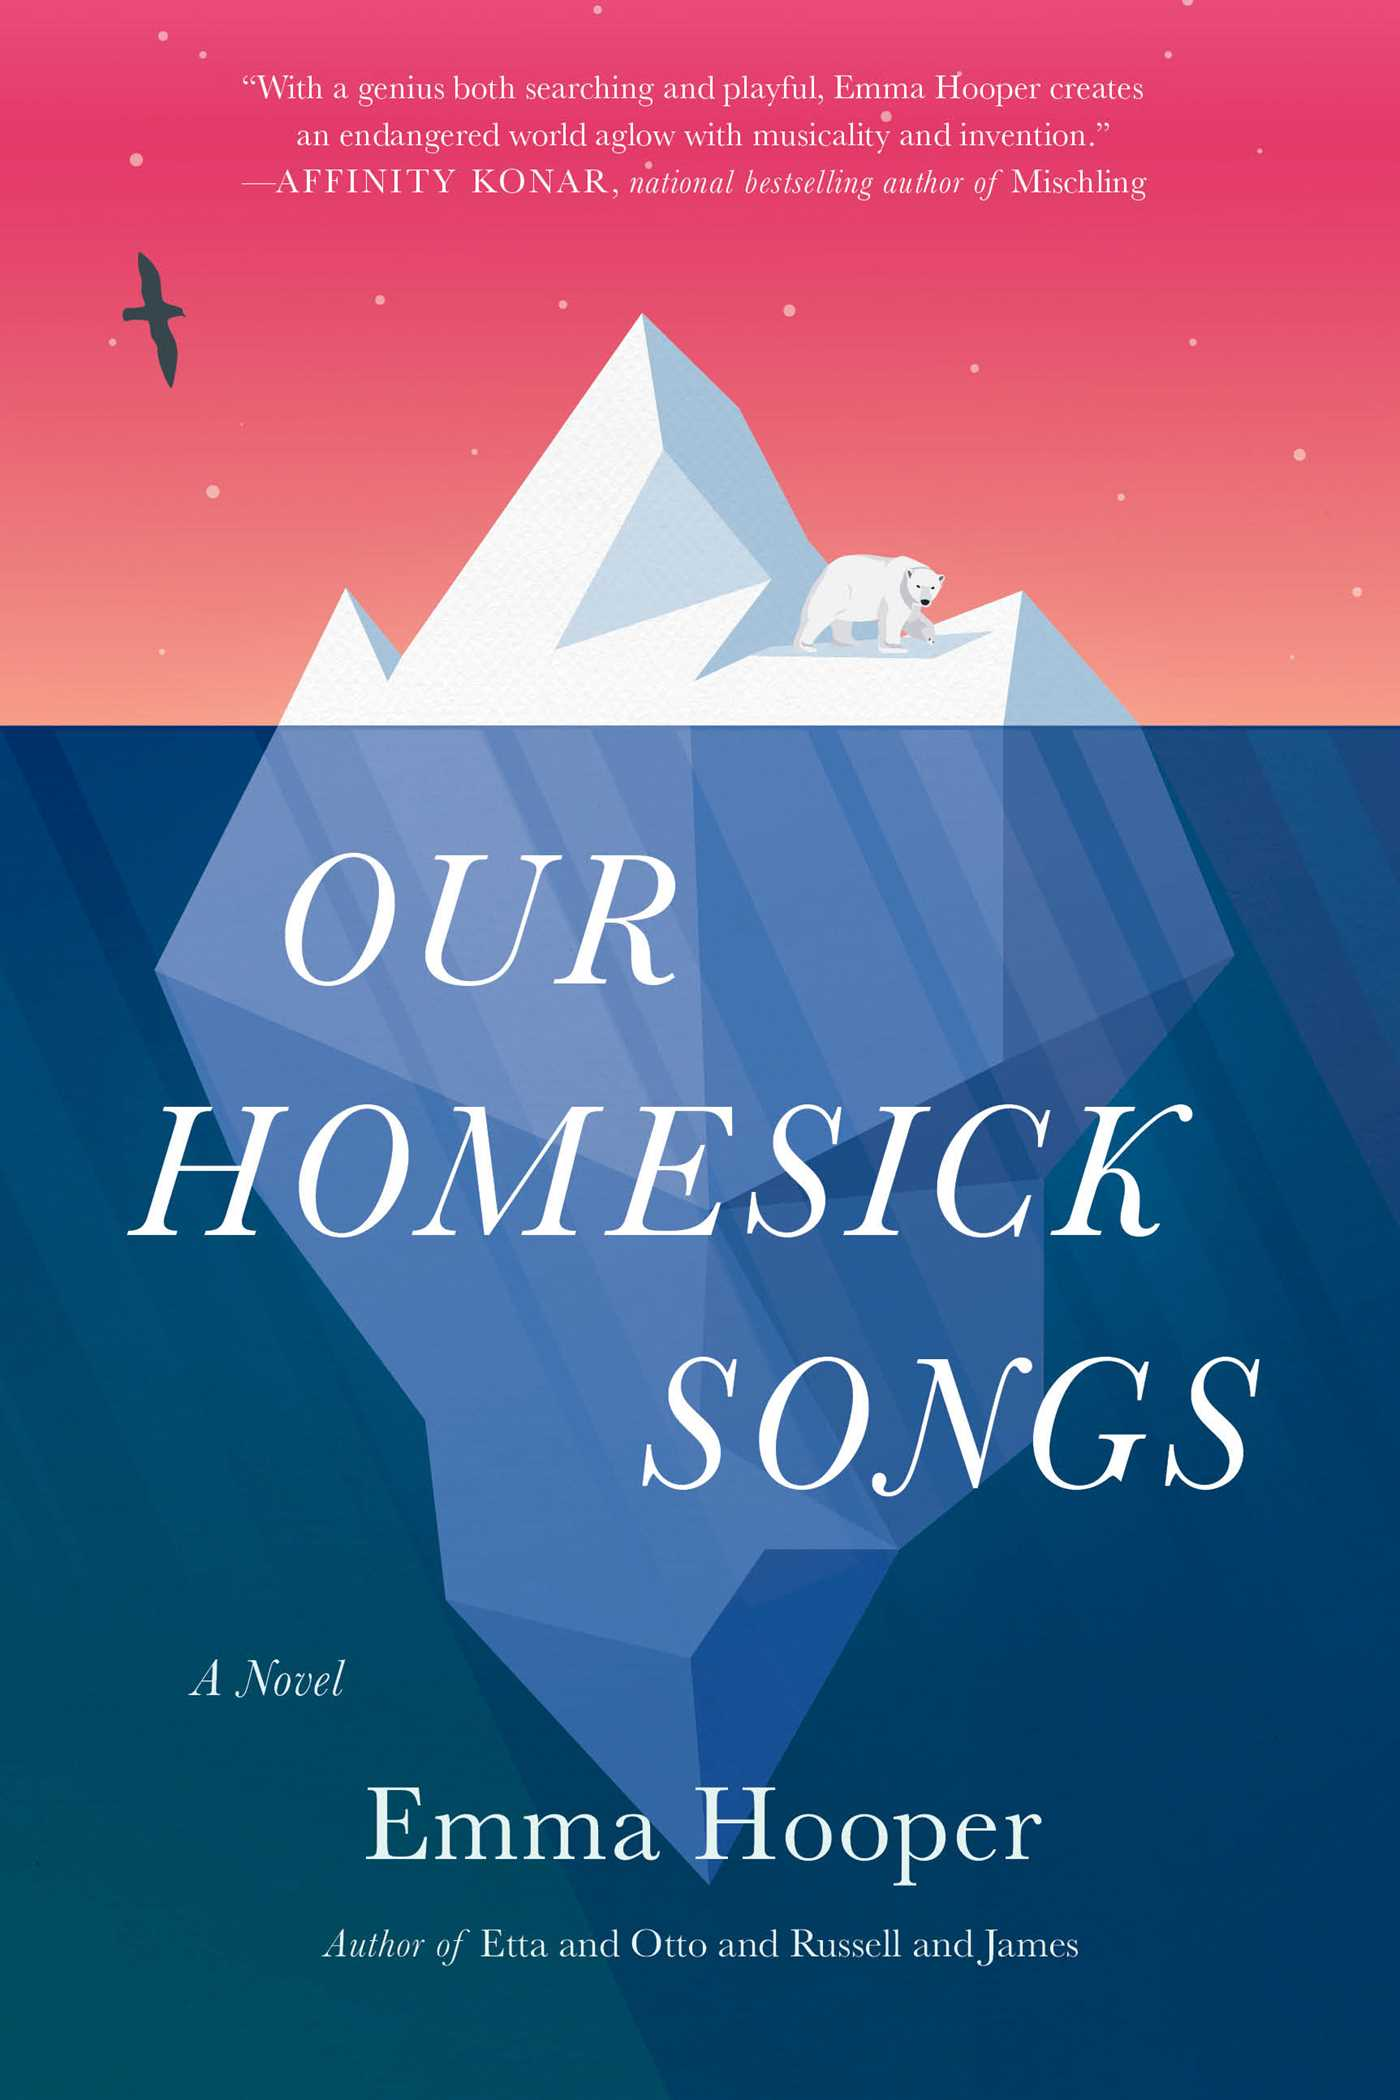 Our Homesick Songs by Emma Hooper